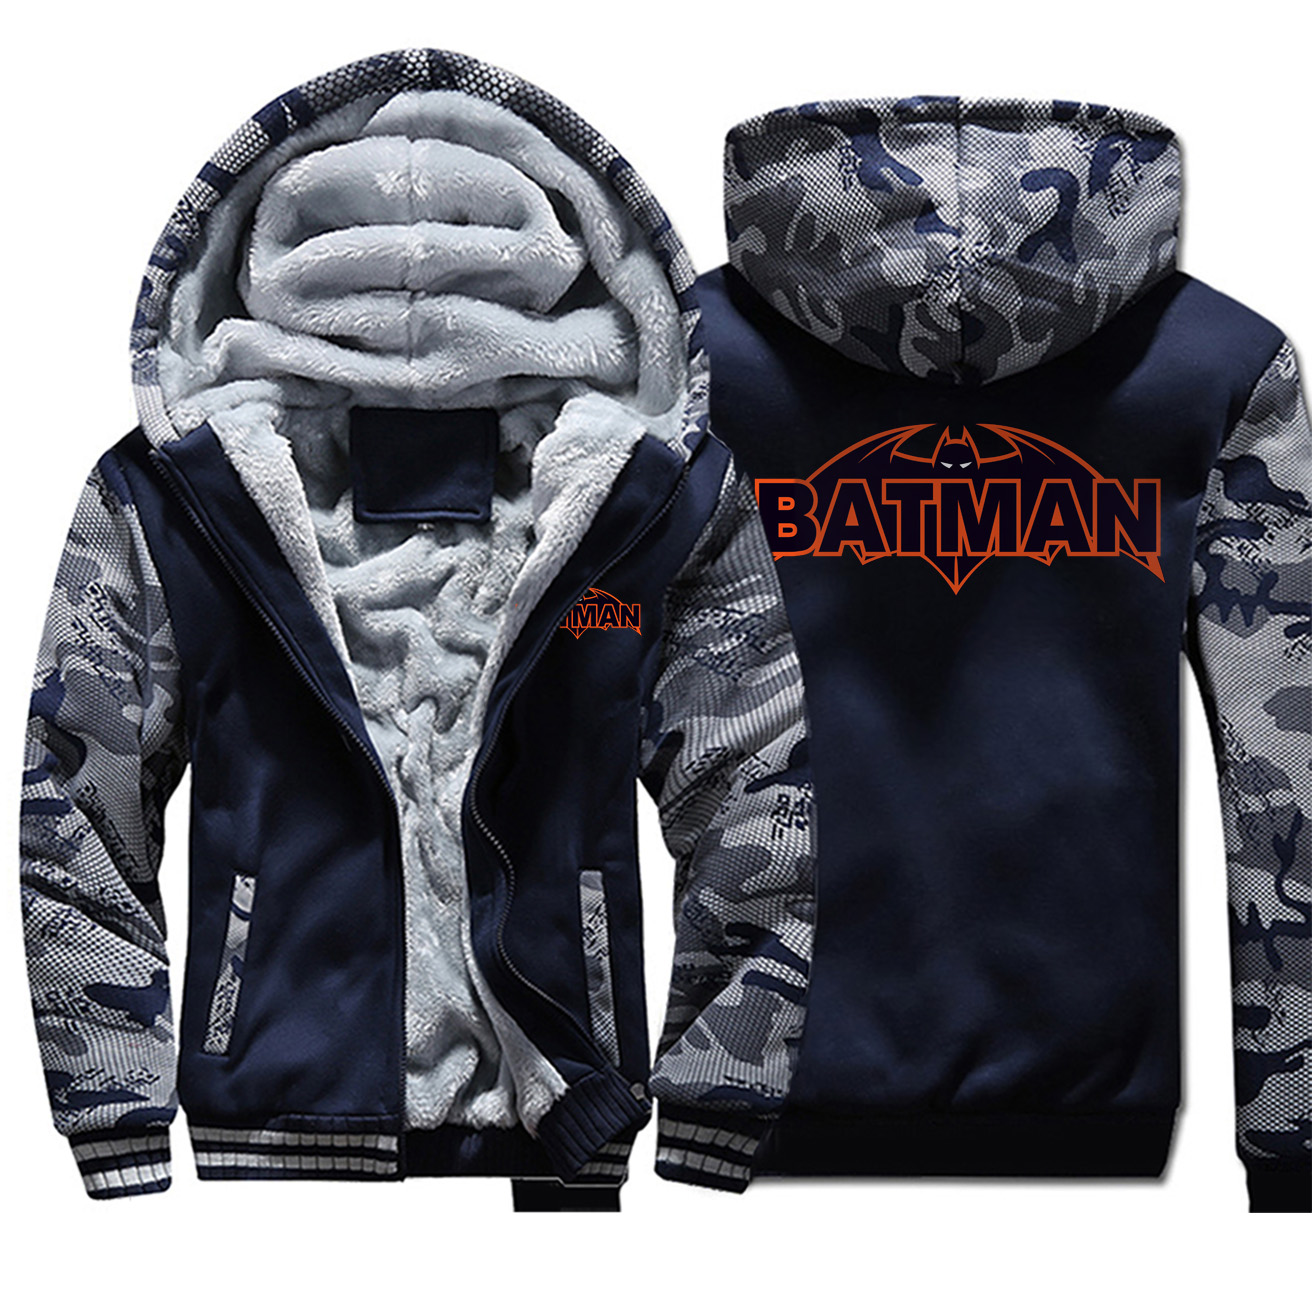 Superhero Batman Comic Hooded Sweatshit Fashion Man Thick Windproof Fleece Long Sleeve Hooded Jacket Outerwear Clothing